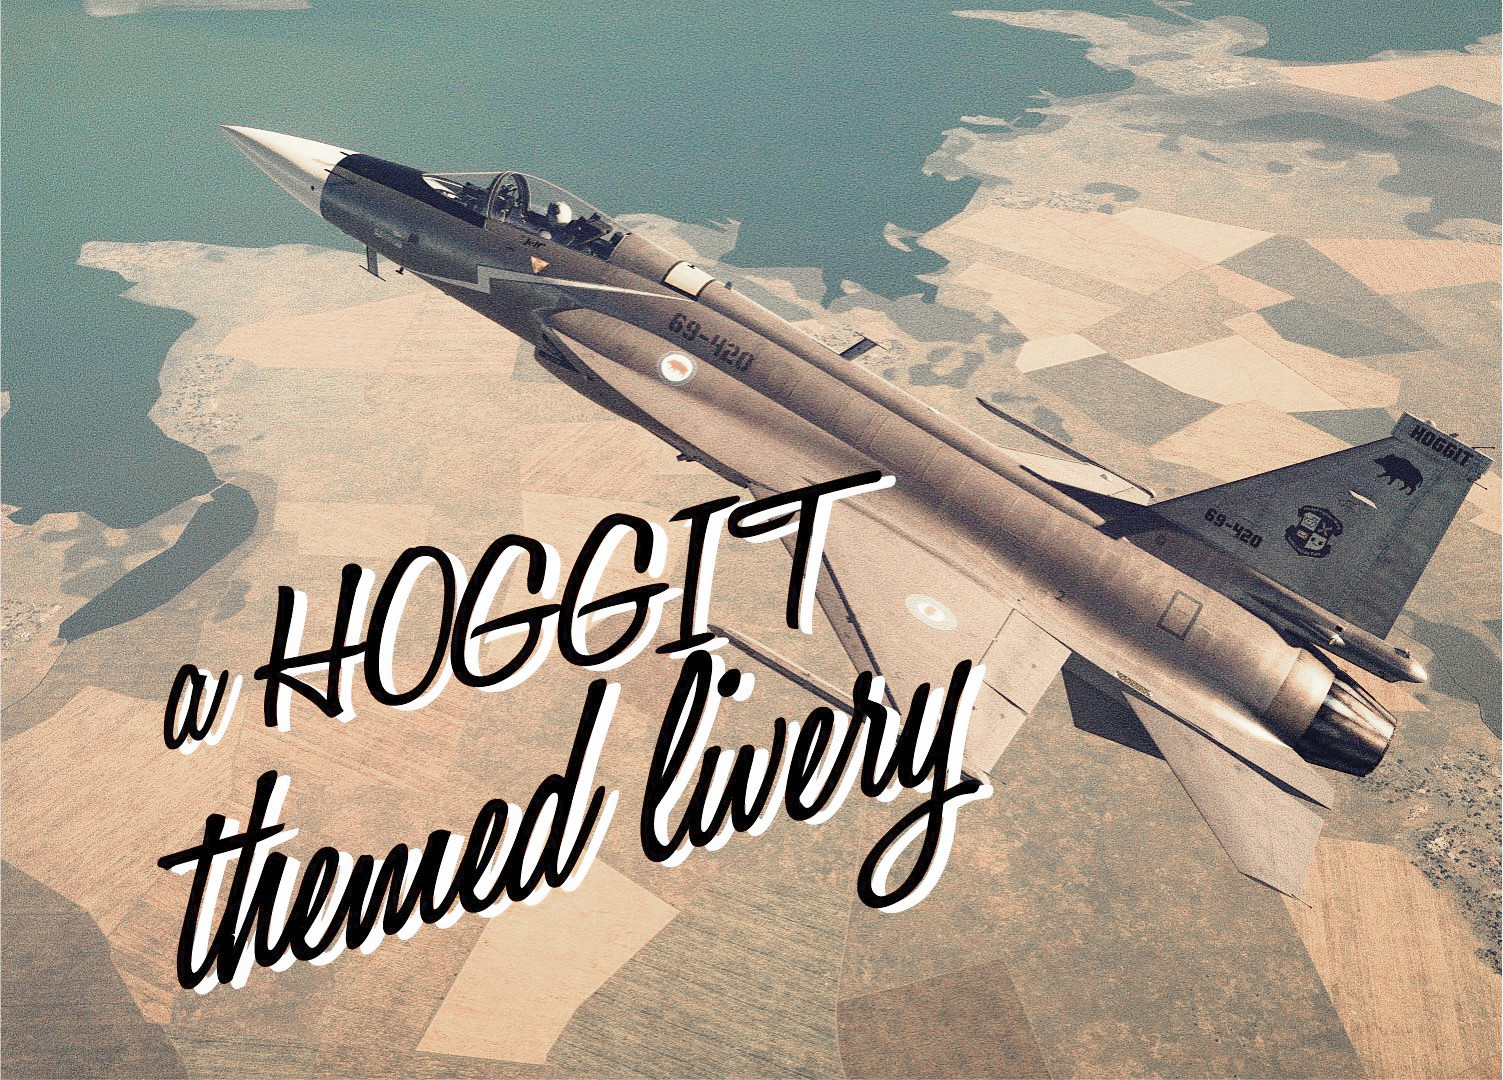 Hoggit Air Force -Starfighter (JF-17 Livery)